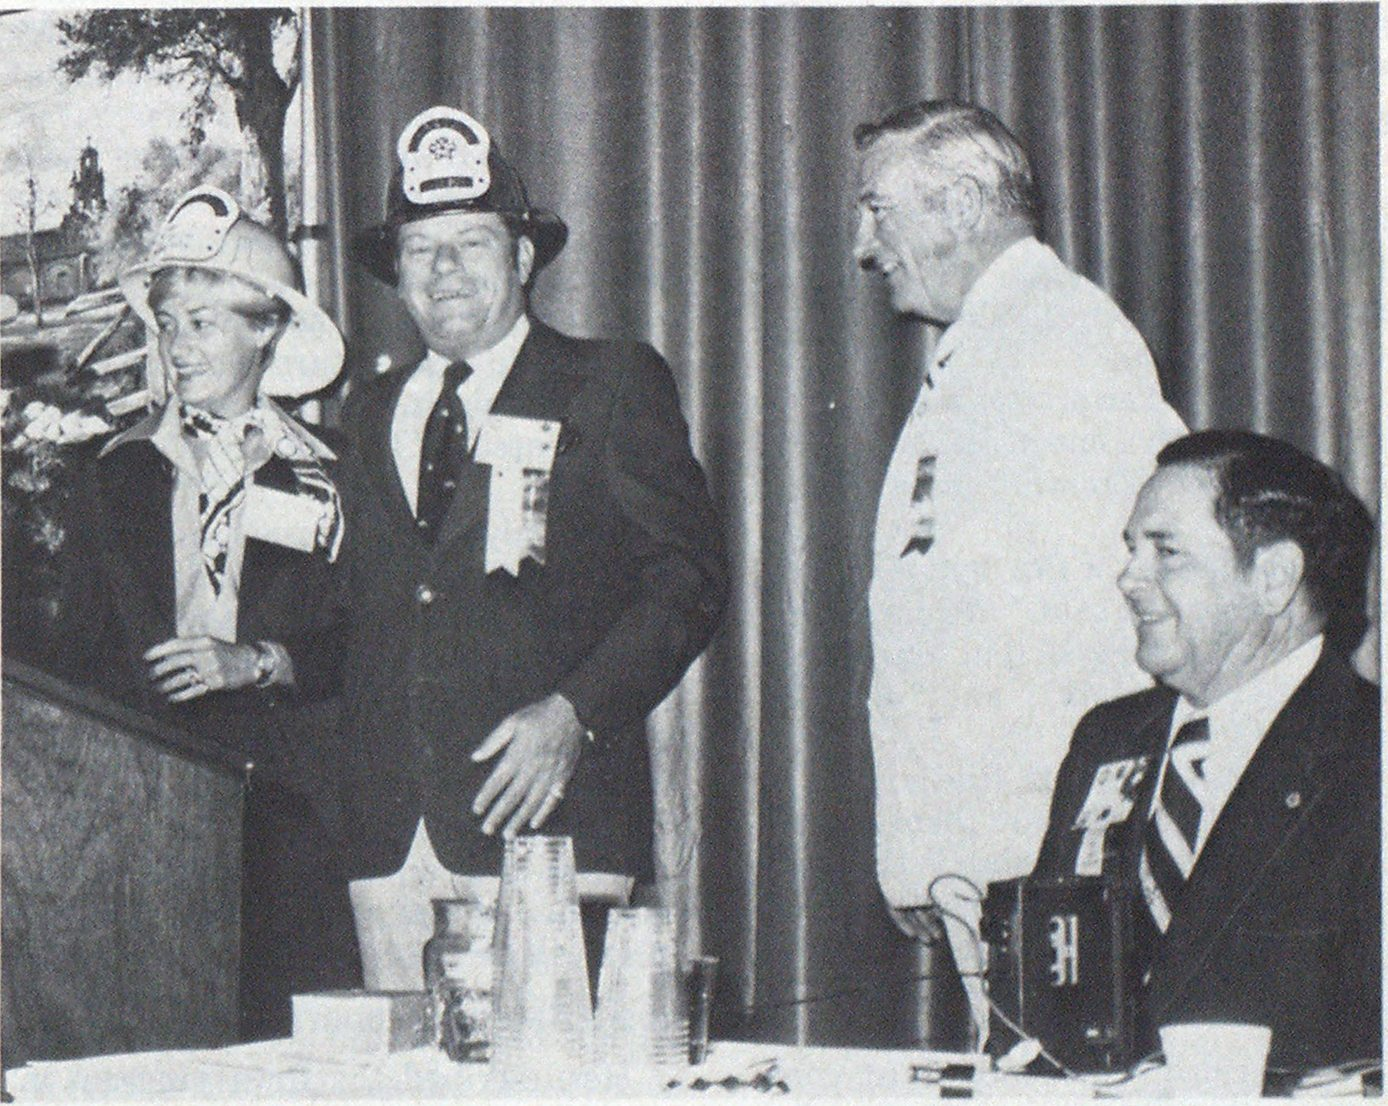 Presentation helmets are worn by Lieutenant Wilma Little, Montgomery County, Md , Fire and Rescue Services, and Past President David B. Gratz. Looking on are Fred Hornsby, standing, of Mine Safety Appliances, donor of the helmets, and President Myrle K. Wise.